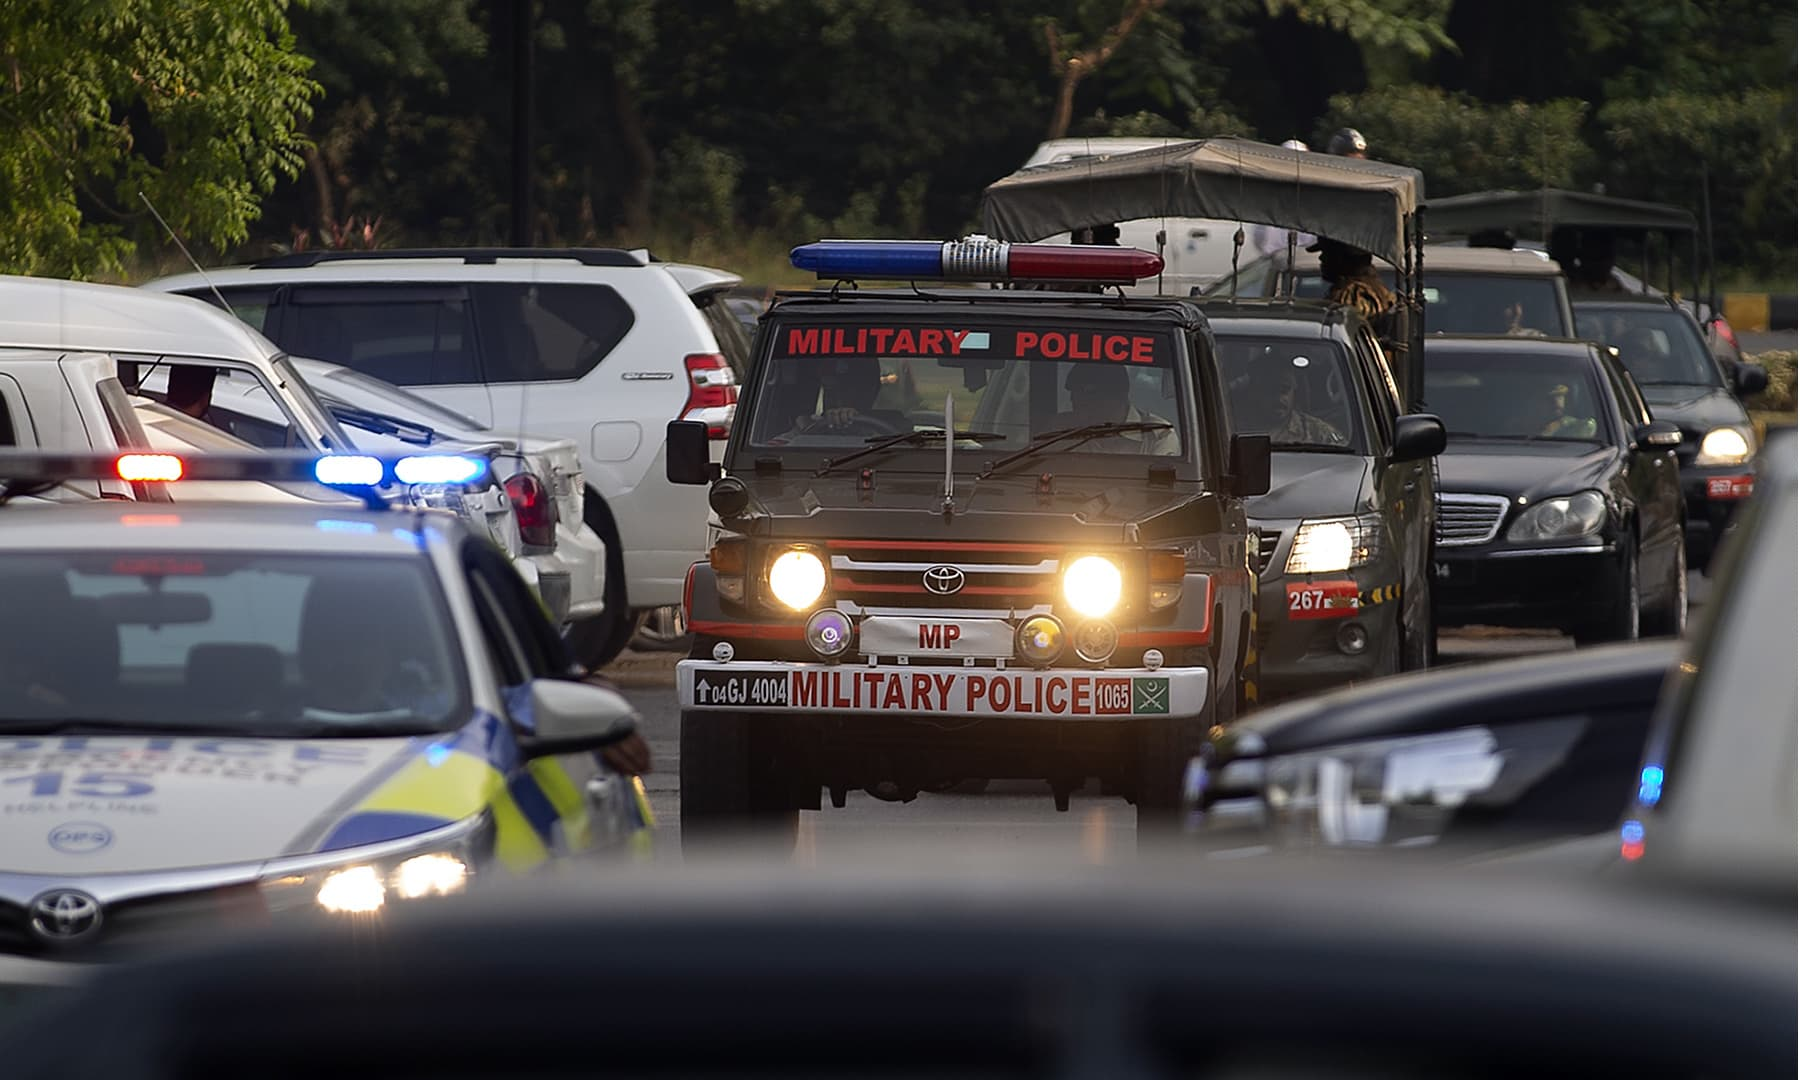 The motorcade of the British royal couple leaves a hotel under tight security in Islamabad, October 15. — AP